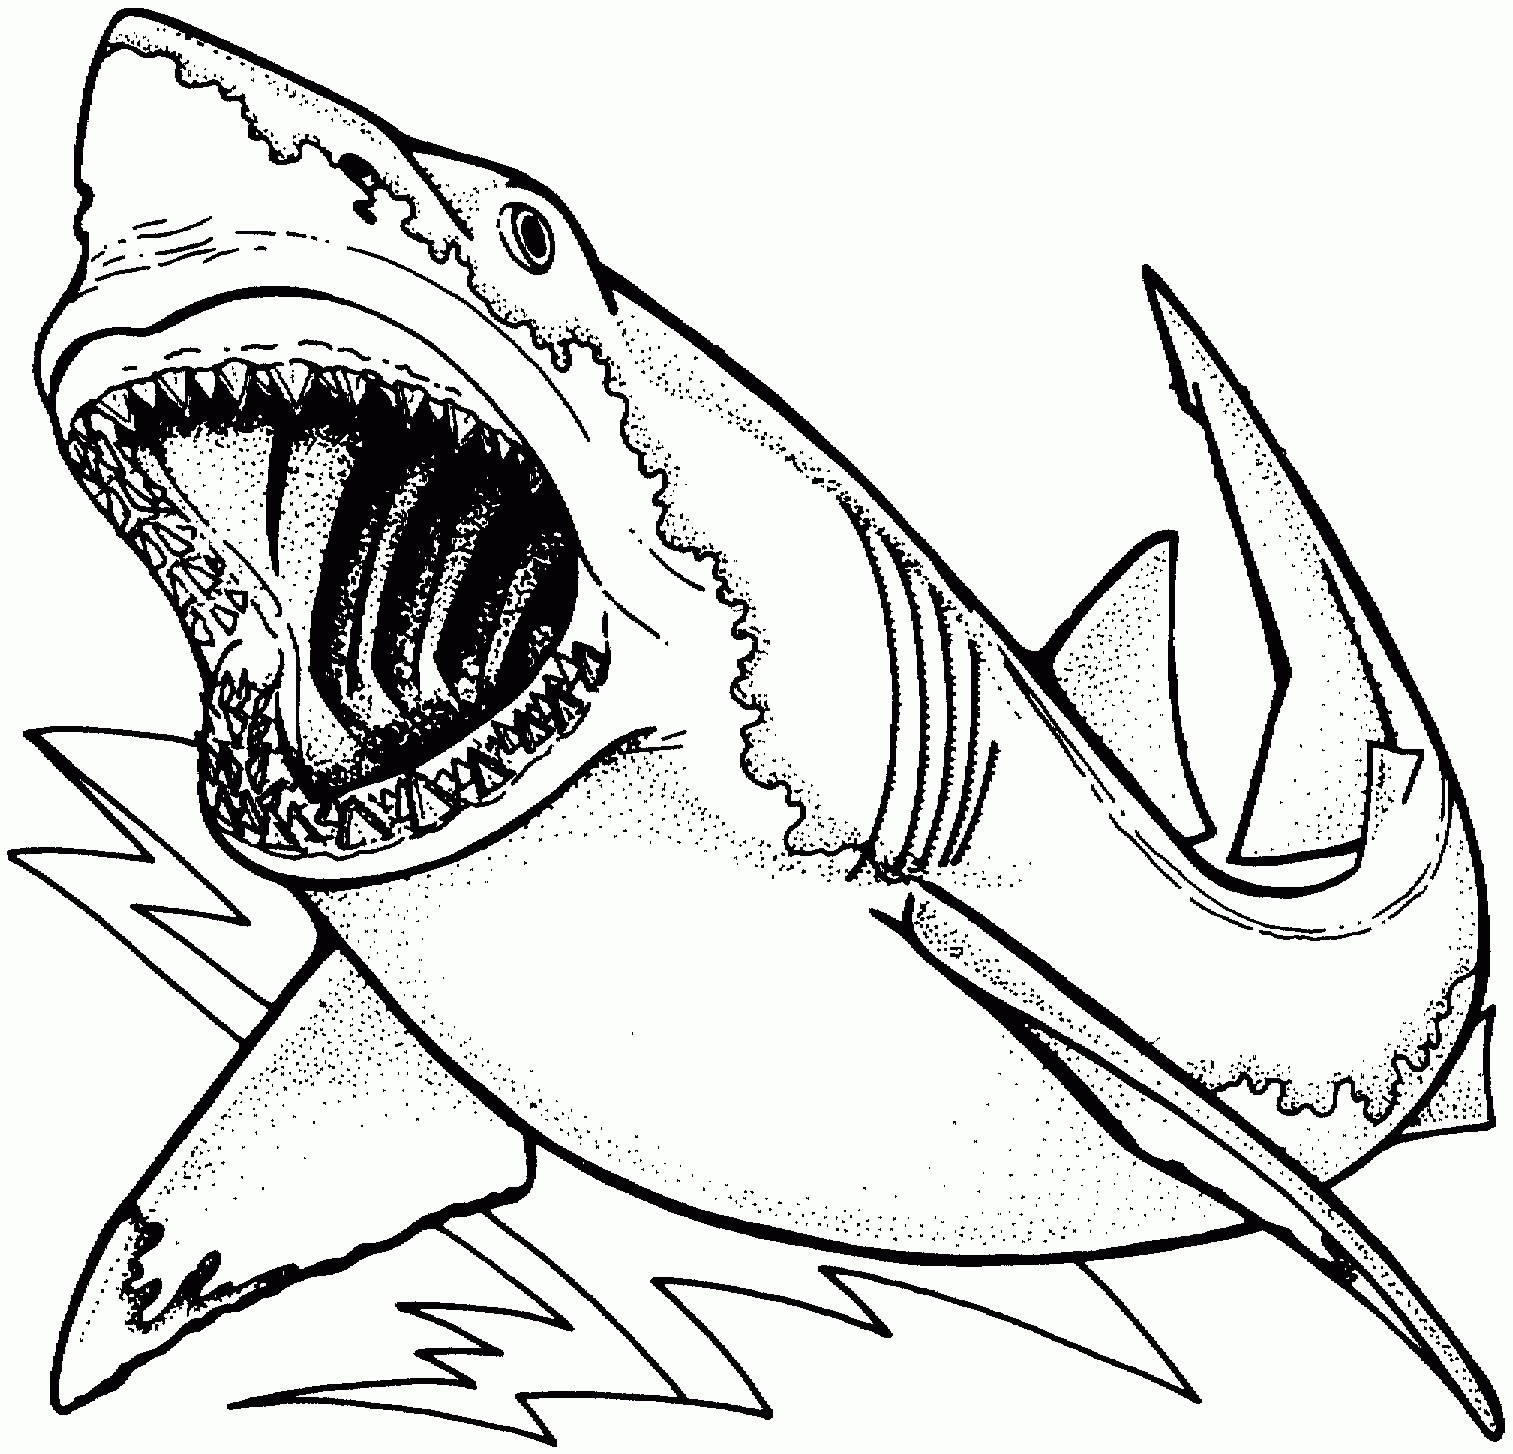 great white shark coloring pages Collection-Shark Coloring Pages Printable Great White Shark Coloring Pages Awesome Bull Shark Drawing at 6-g